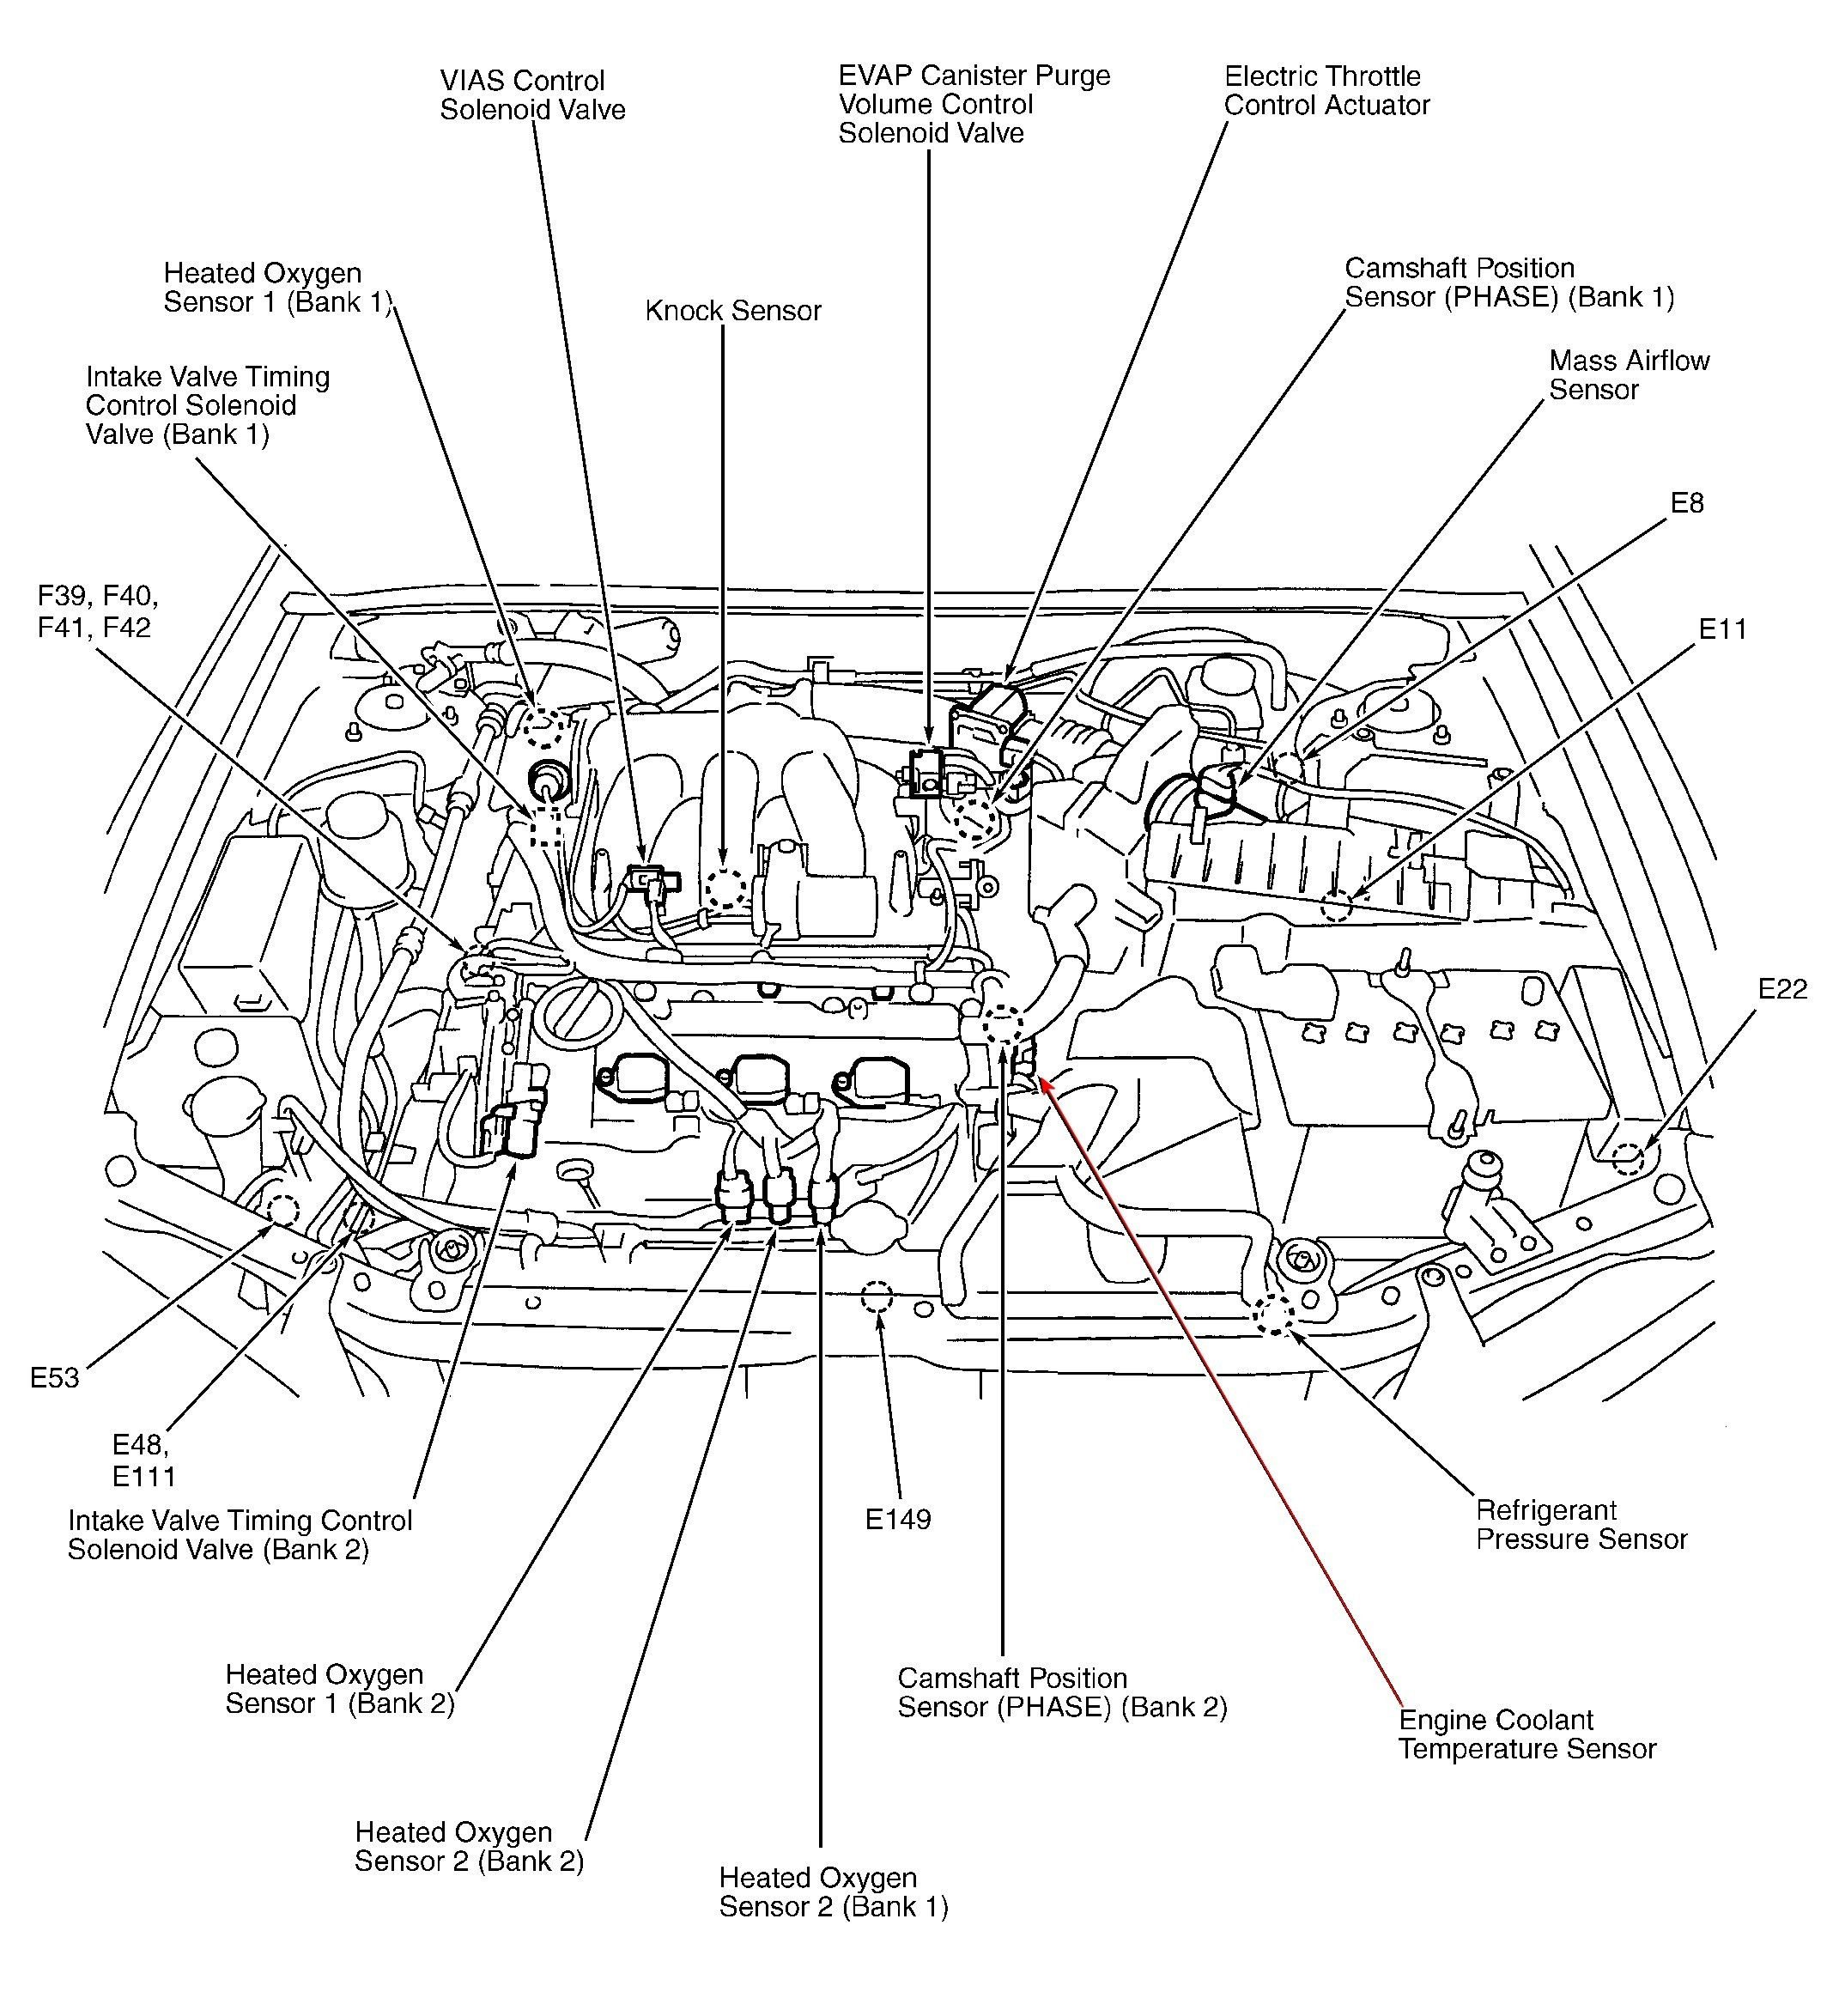 2015 Dodge Challenger Engine Diagram - Wiring Diagram User on dodge challenger windshield, dodge challenger amp location, dodge challenger parking light, dodge challenger cigarette lighter, dodge challenger back window, dodge challenger strut, dodge d150 fuse box, dodge challenger caliper, dodge challenger air cleaner, dodge challenger console, dodge challenger fuel injector, dodge challenger speed sensor, dodge challenger camshaft, dodge challenger speaker, dodge challenger bumper guard, dodge challenger relay, dodge stealth fuse box, dodge challenger starter, dodge challenger piston, dodge challenger coolant reservoir,